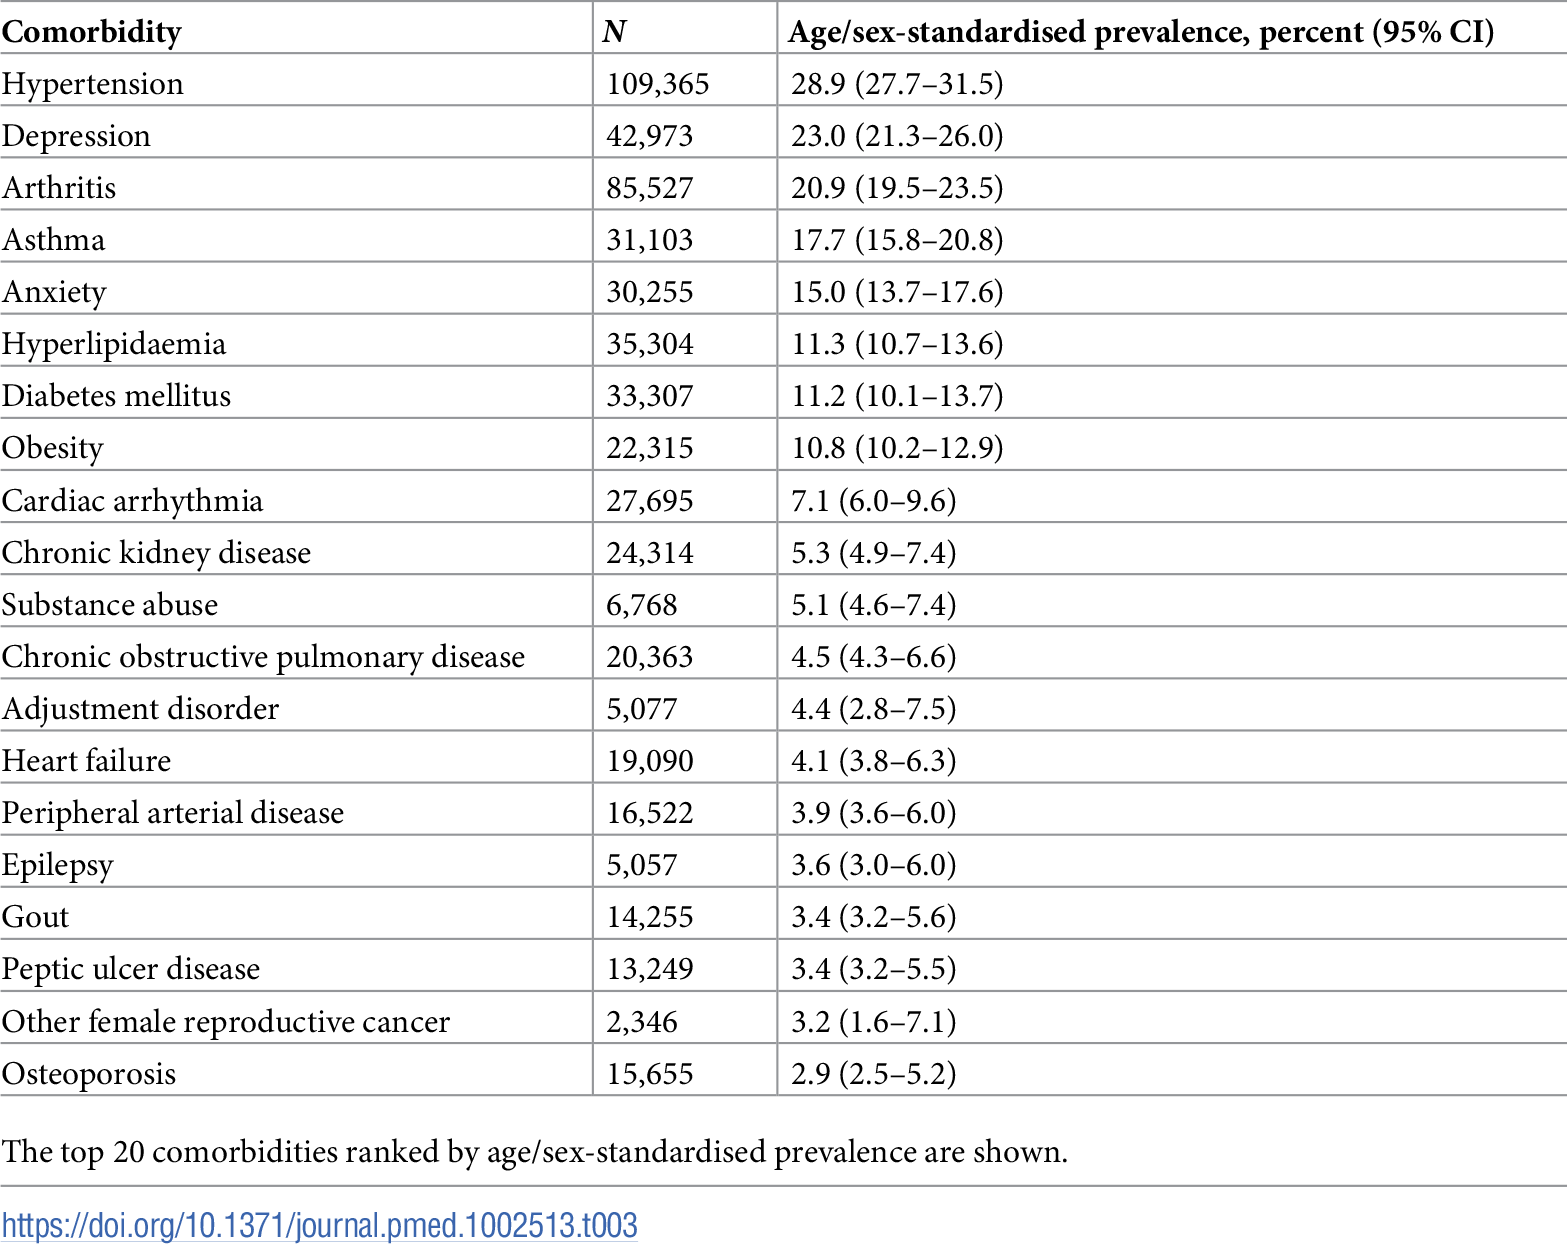 Age/sex-standardised prevalence of comorbidities in patients with incident cardiovascular disease (<i>n =</i> 229,205).